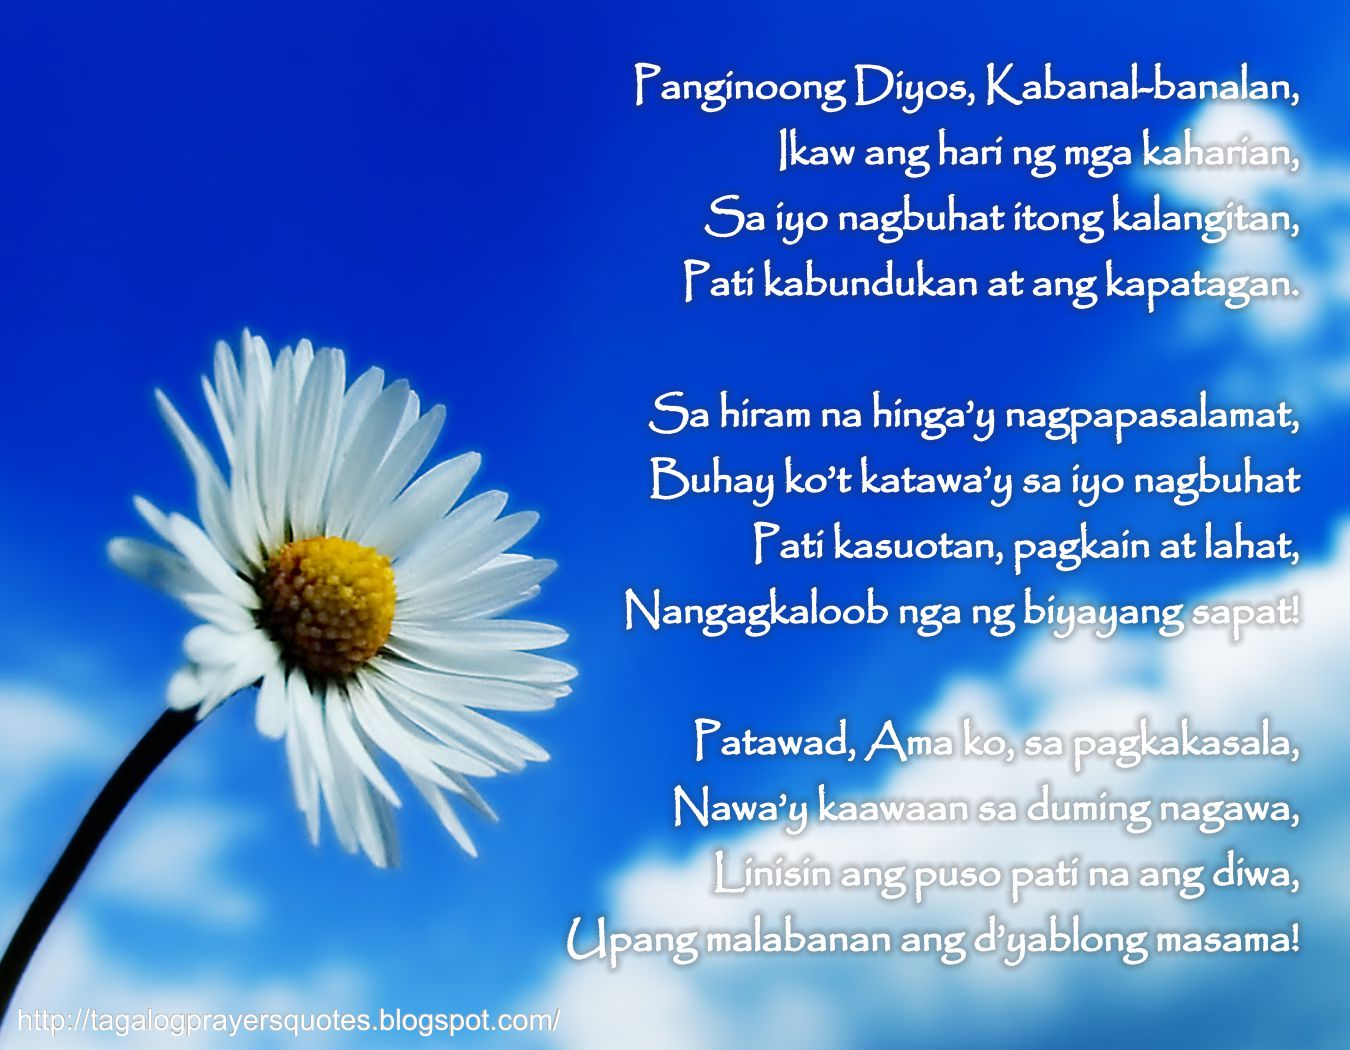 Quotes Tagalog About Friendship Tagalog Prayers And Christian Quotes Tagalog Prayer Poem